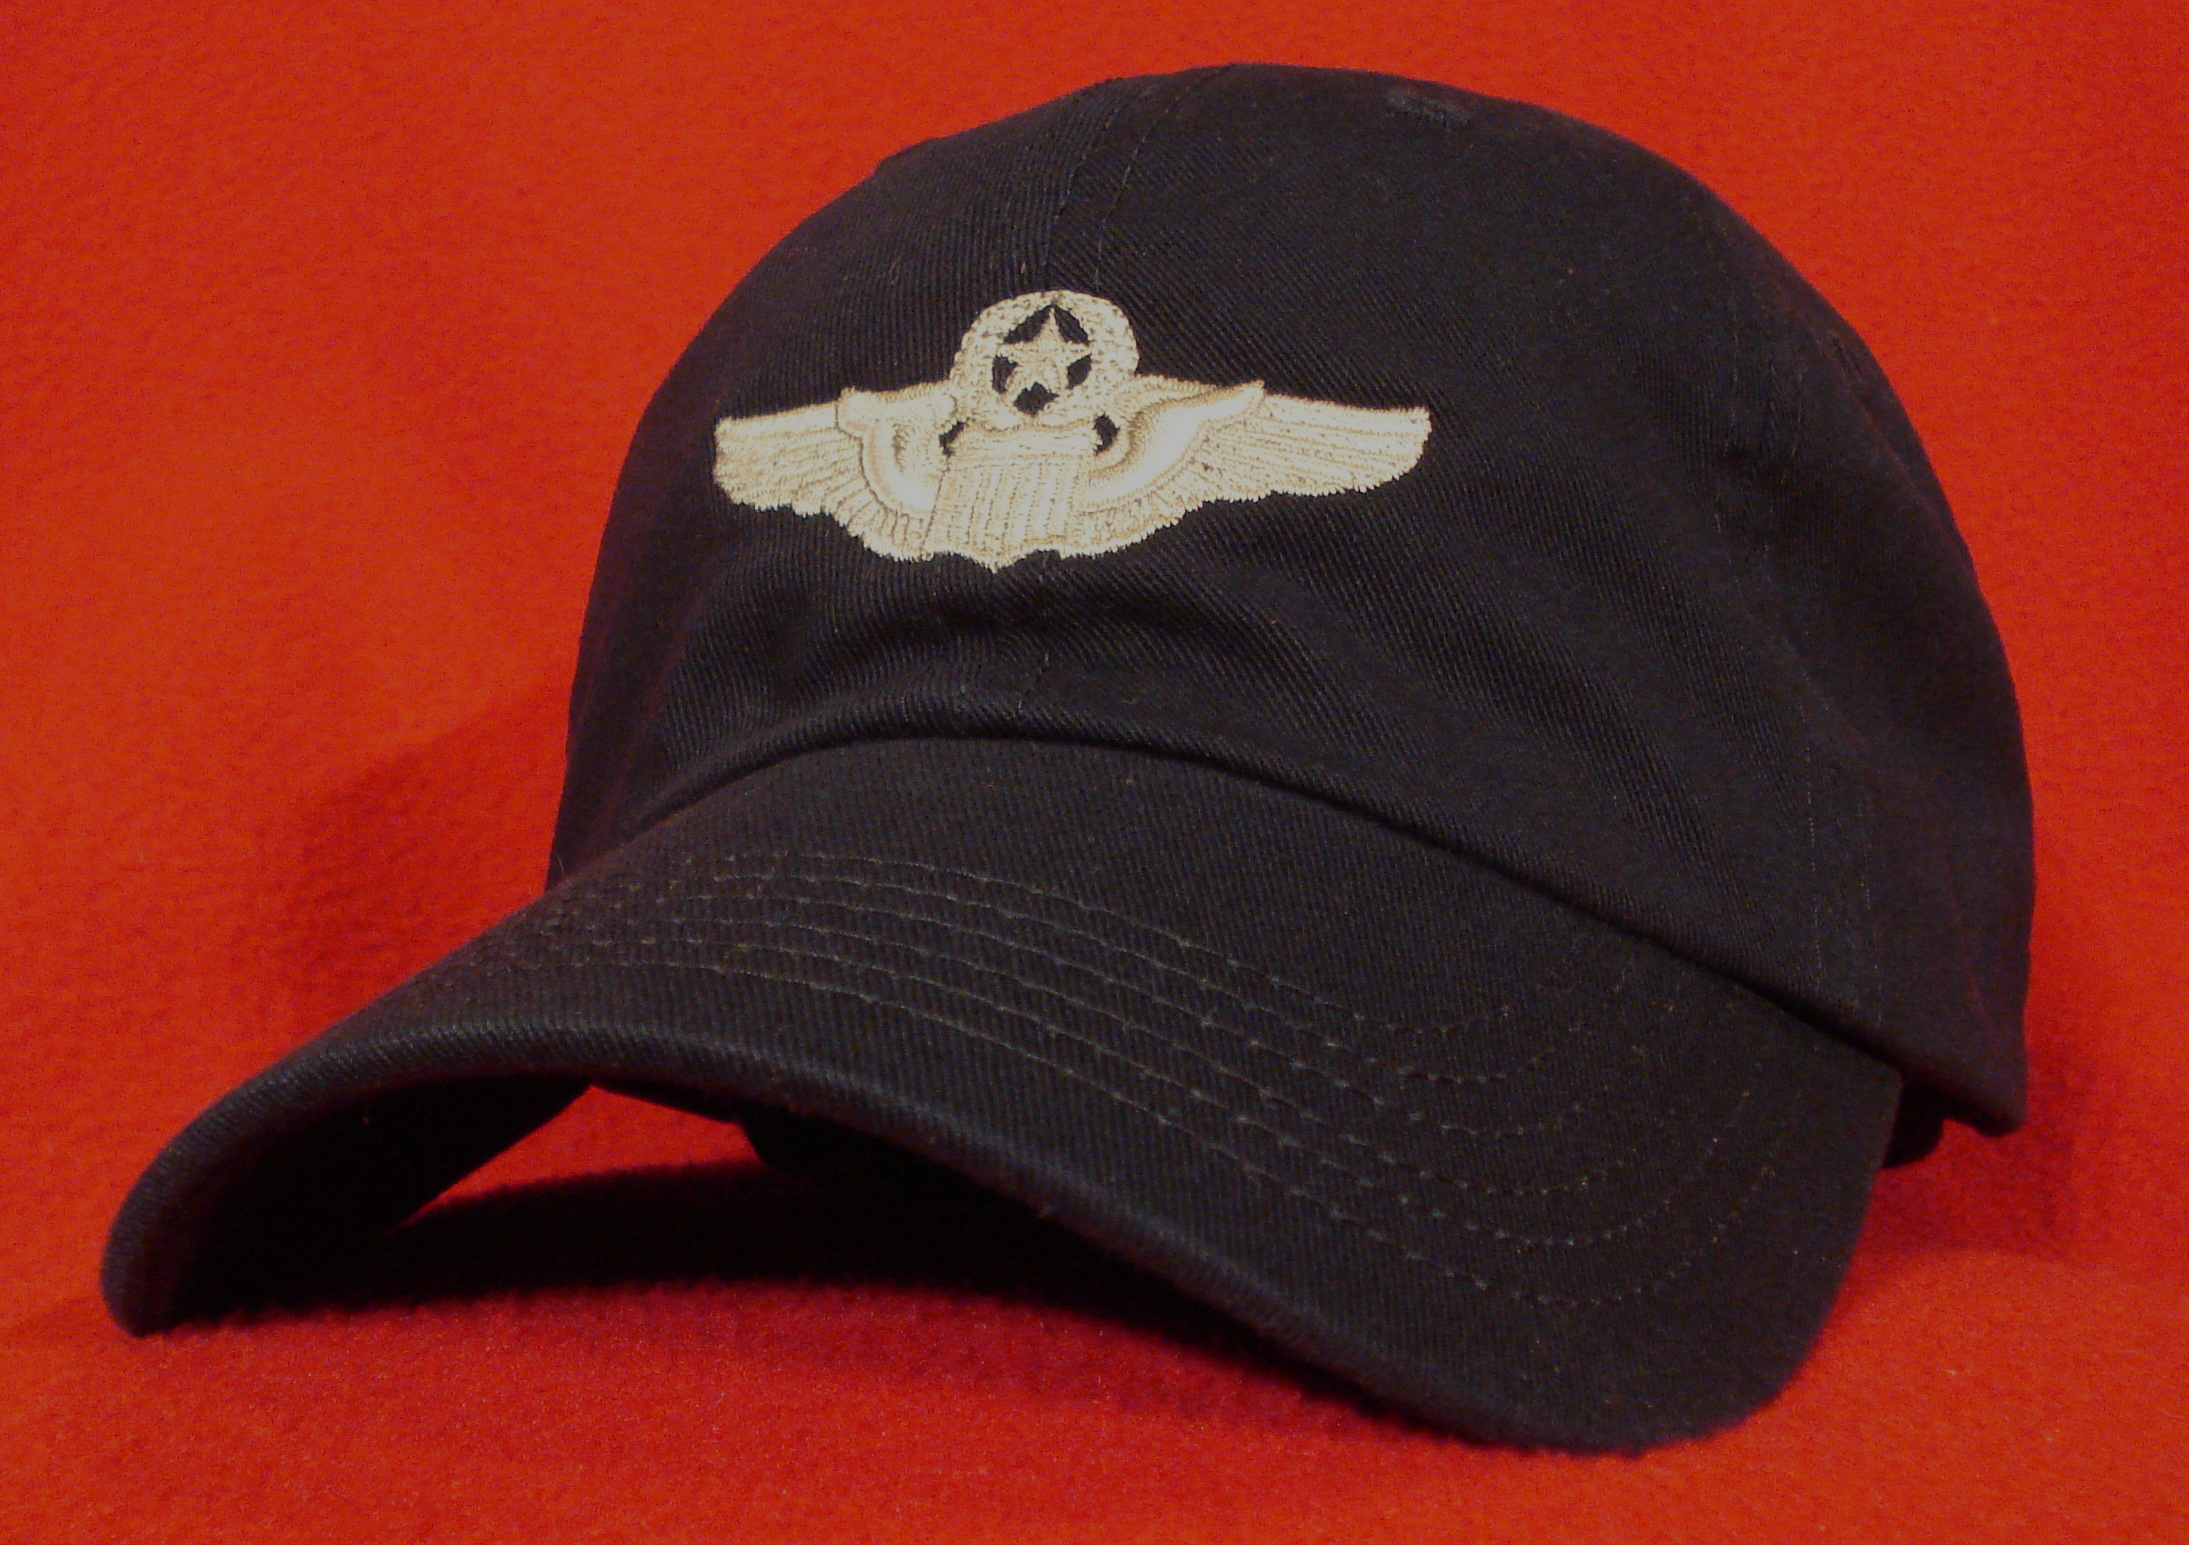 Air Force Pilot Wings Ball Caps Online Hats By Pilot Ball